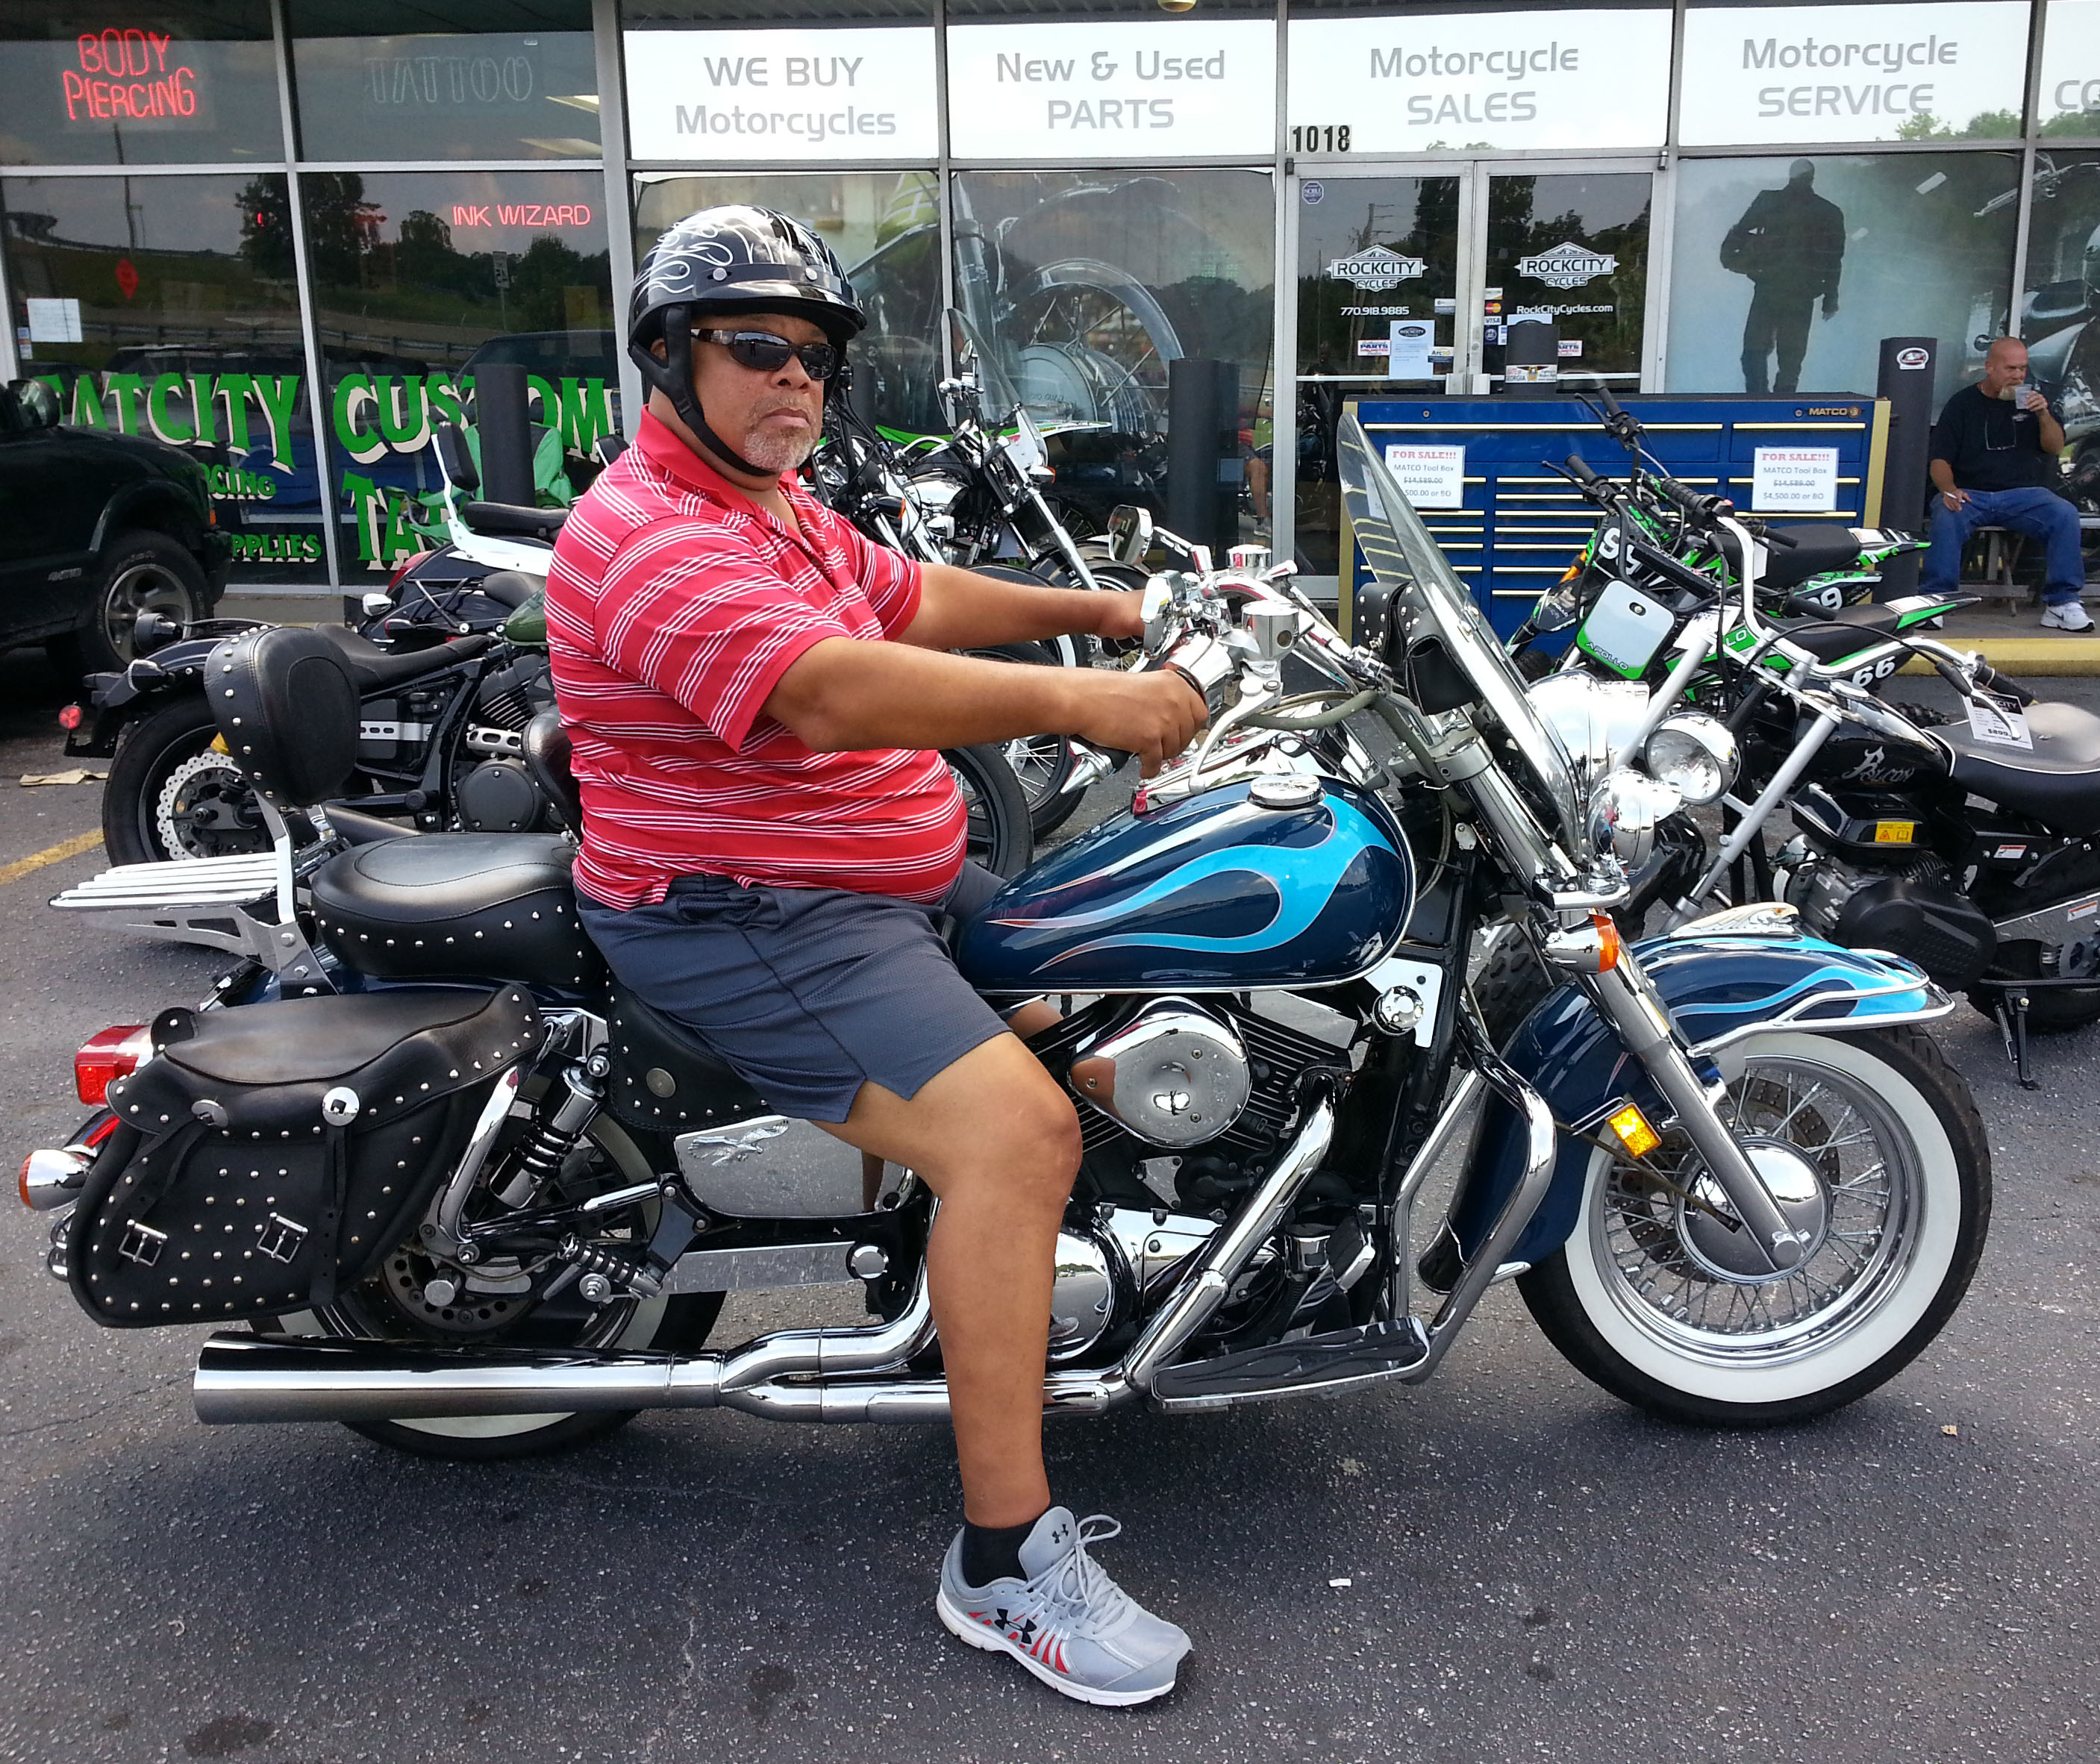 Anthony with 1999 Kawasaki Vulcan Classic 1500